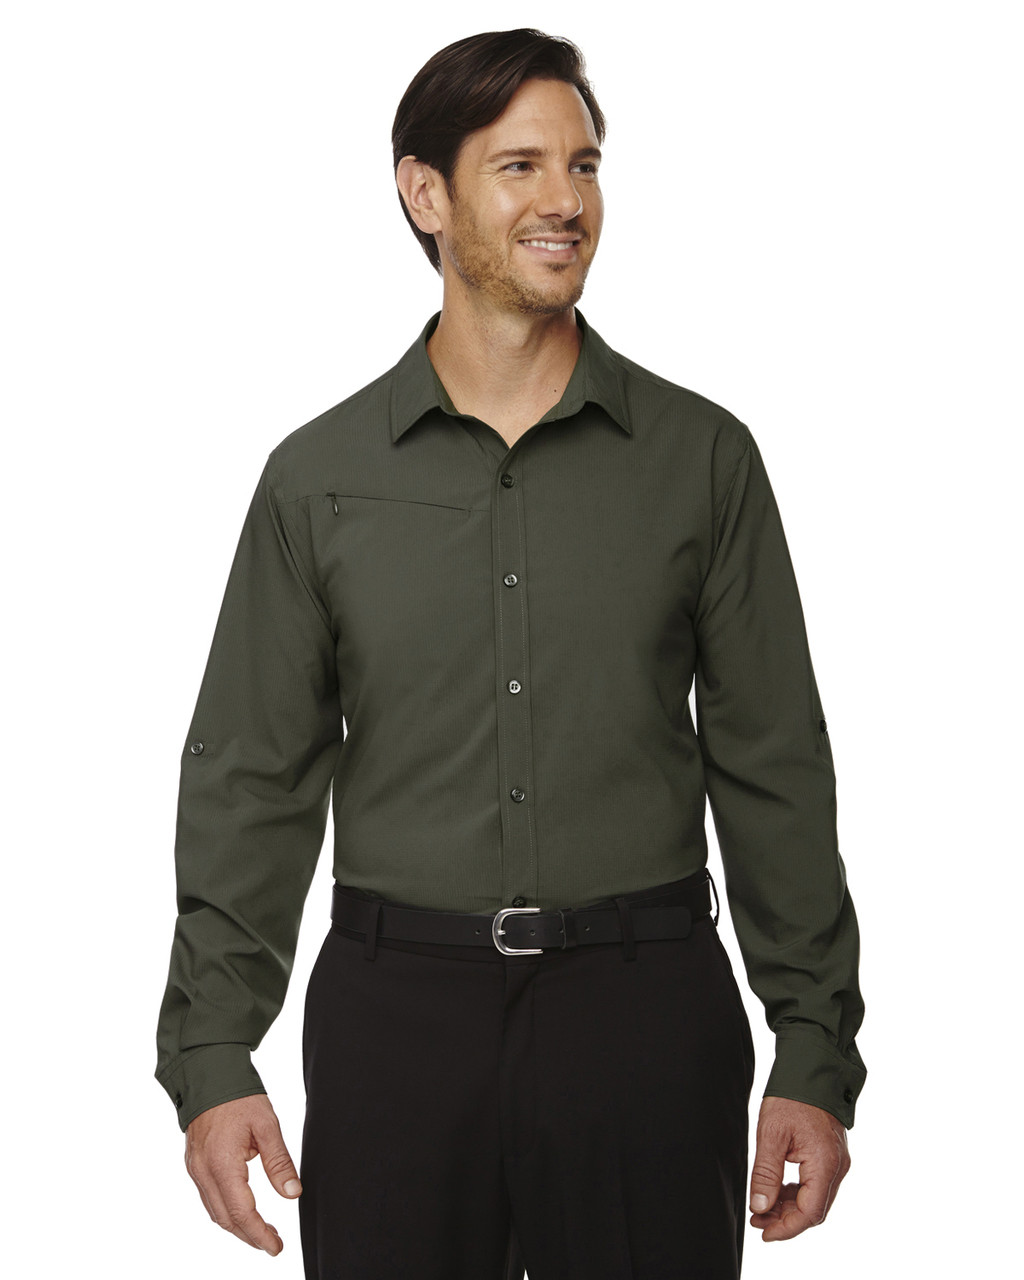 Oakmoss - 88804 North End Performance Shirt with Roll-Up Sleeves Shirt